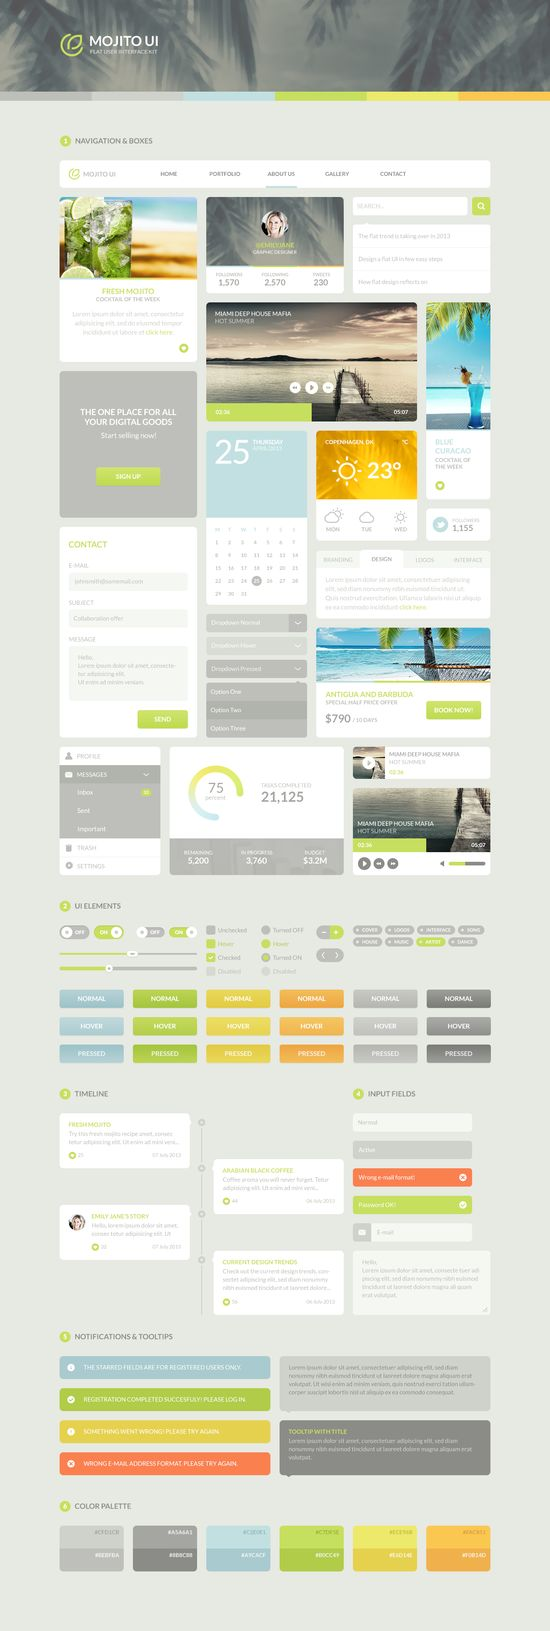 #UI #UX #GUI #UIKit #Design #Dribbble #Userinterface #Interface #Flat #Search #Stylesheet #Mojito